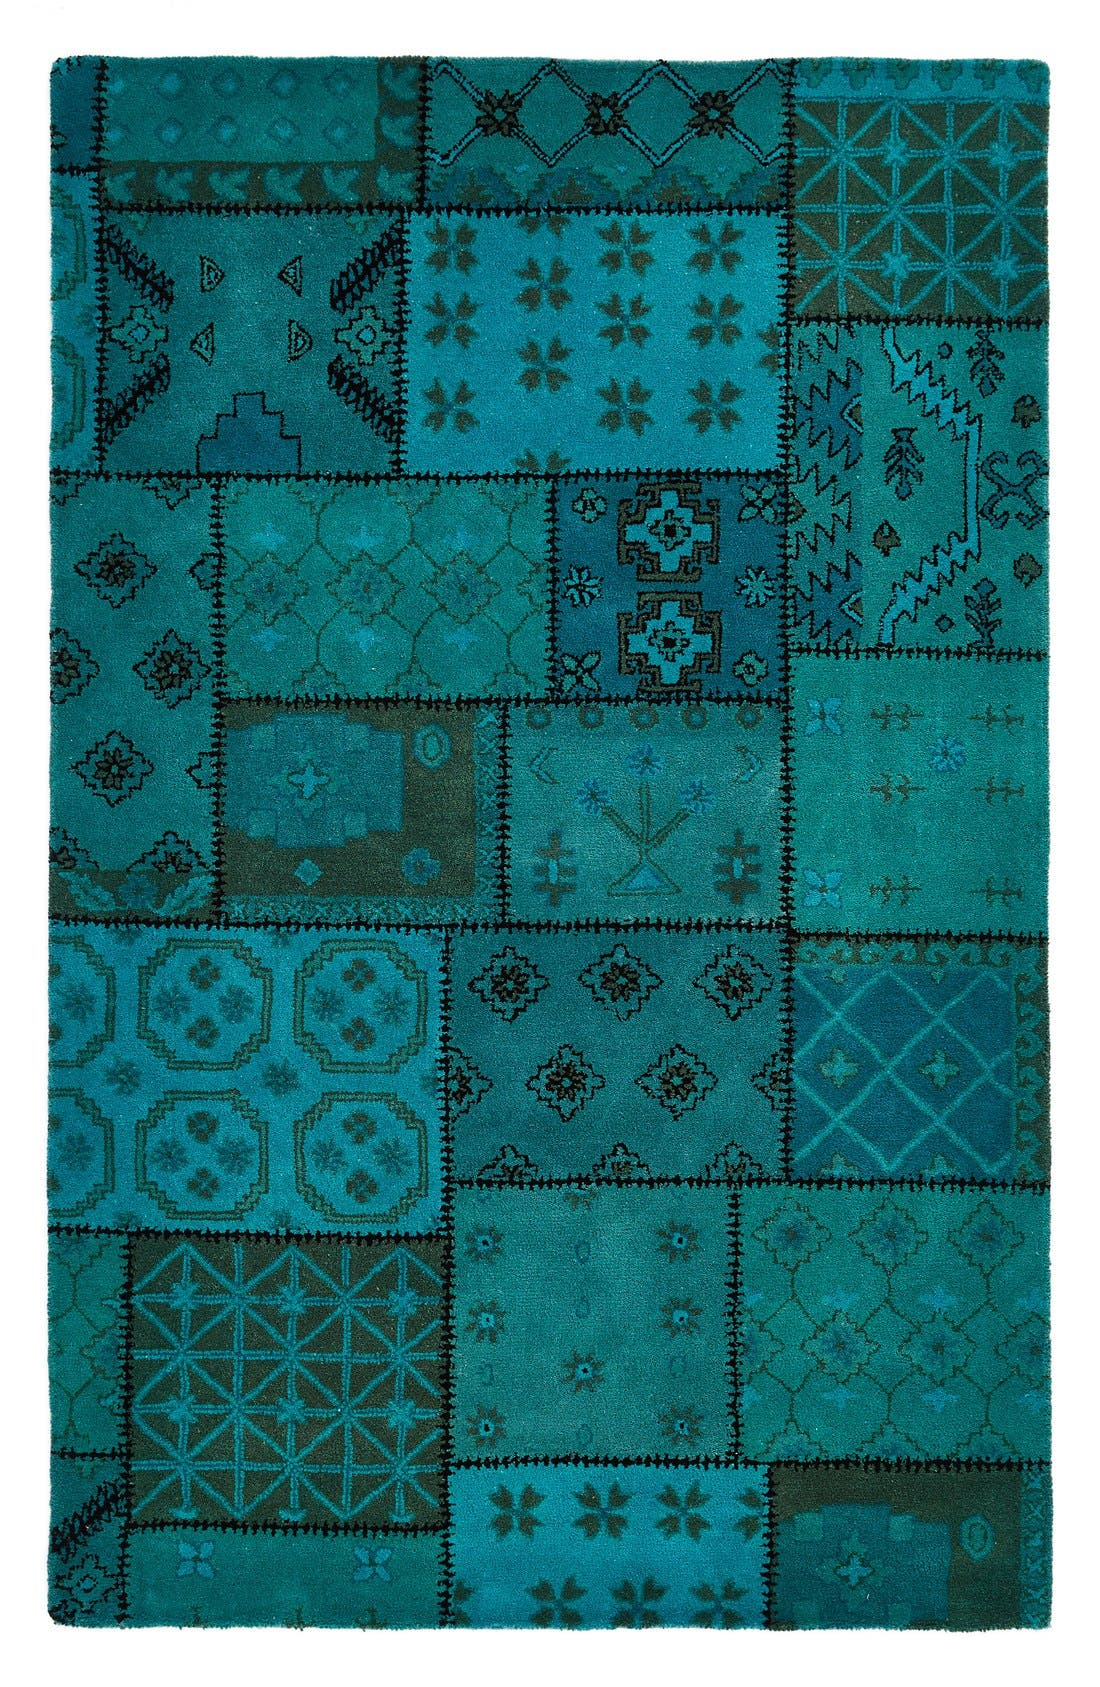 Alternate Image 1 Selected - Rizzy Home Hand Tufted Wool Area Rug